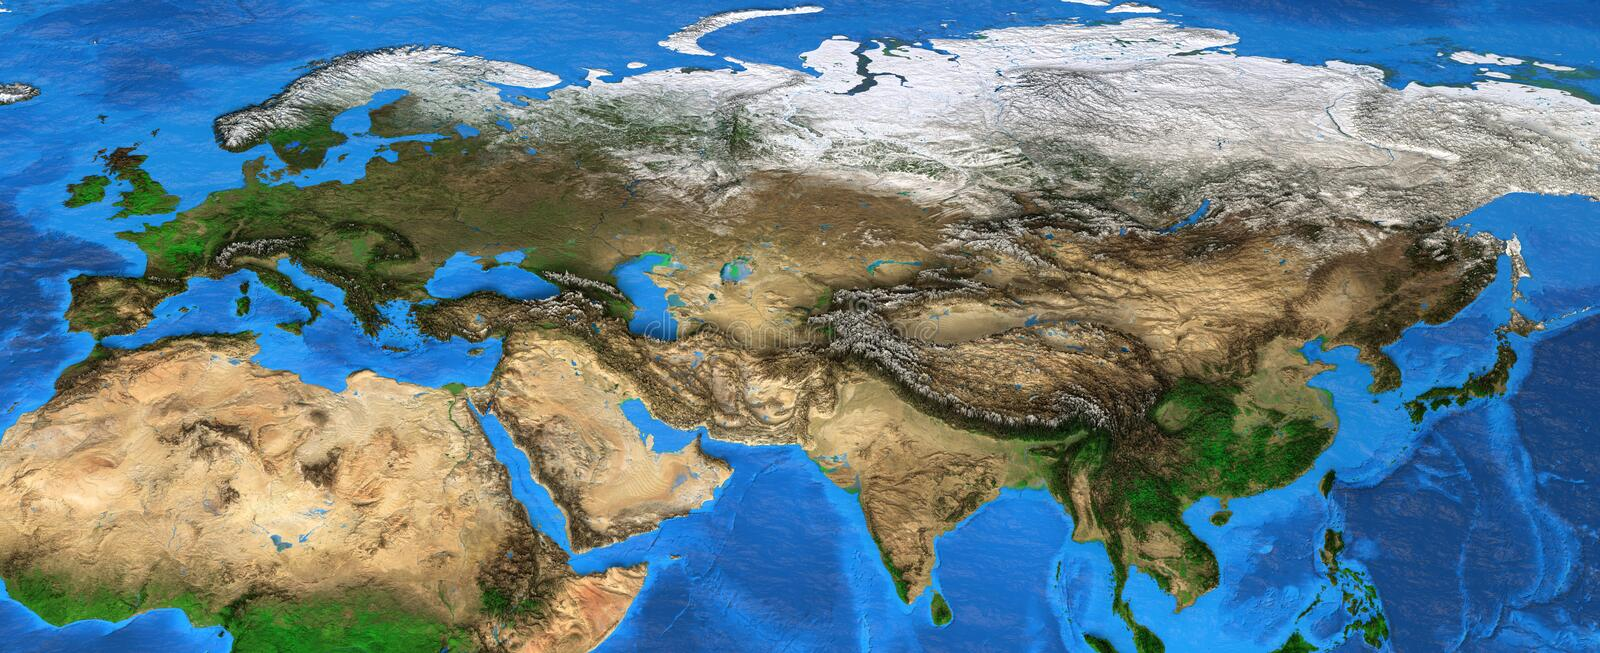 Eurasia - High Resolution Map Of Europe And Asia Stock Image - Image ...